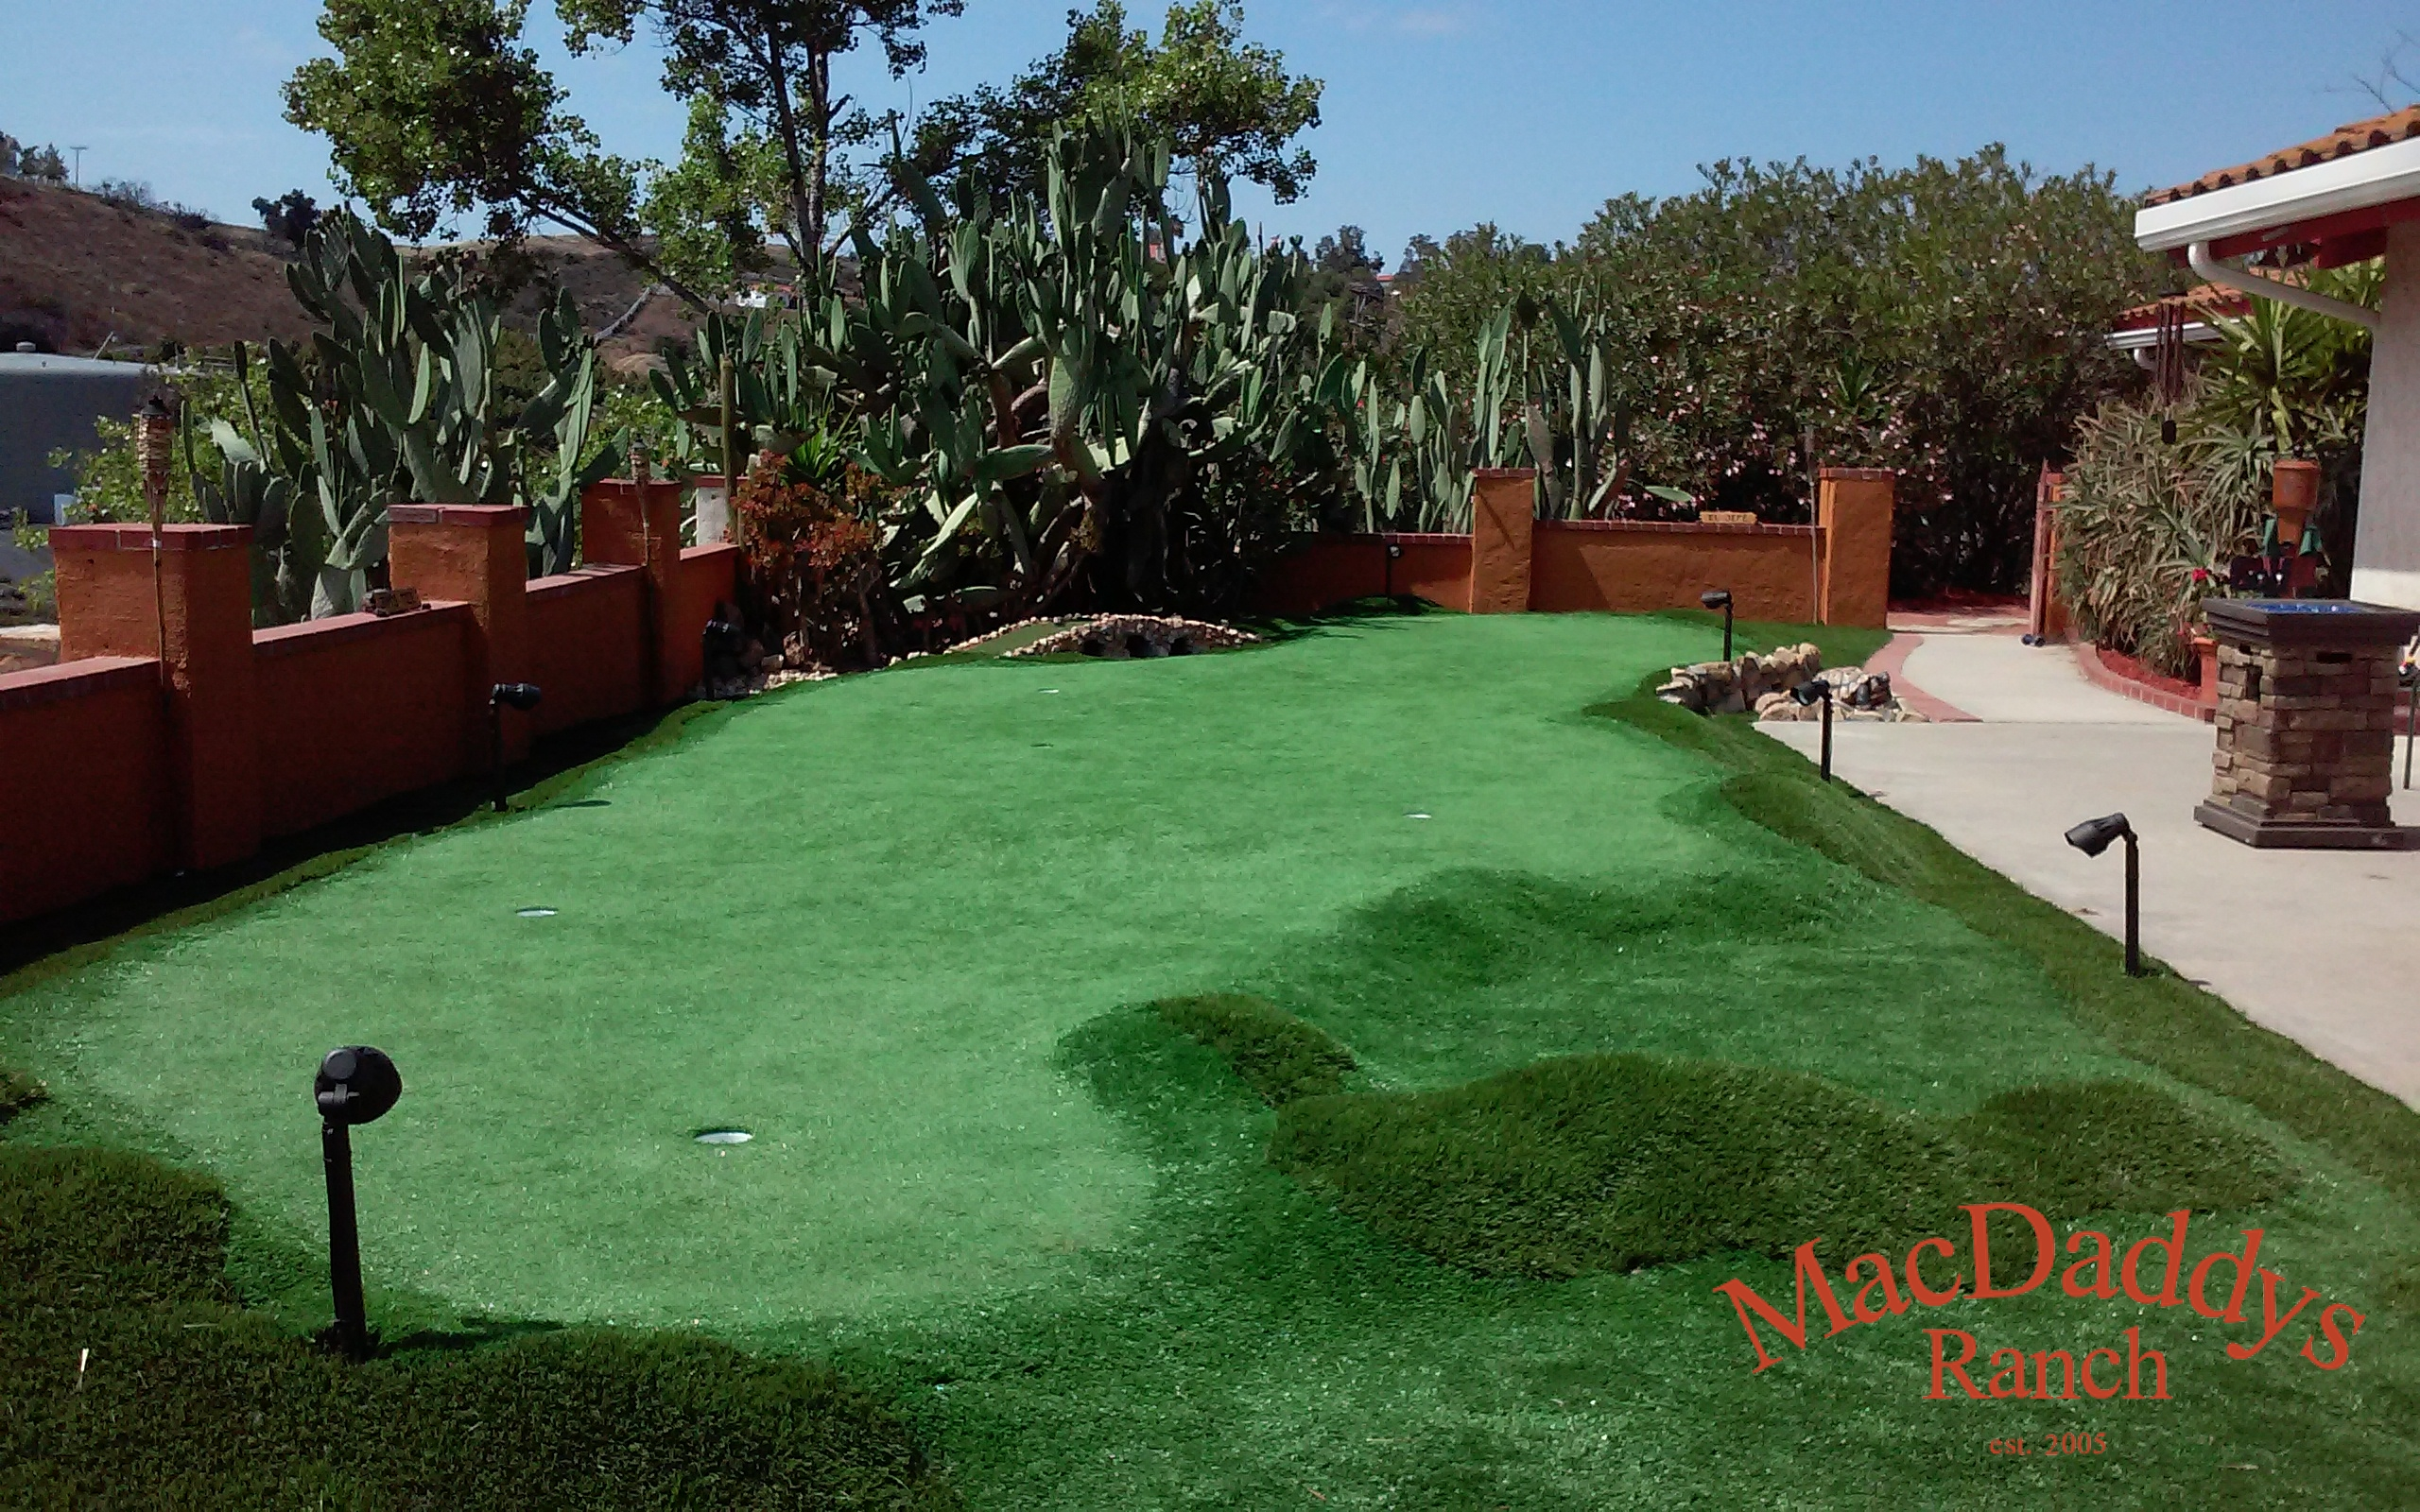 MacDaddys Ranch Putting Green 2